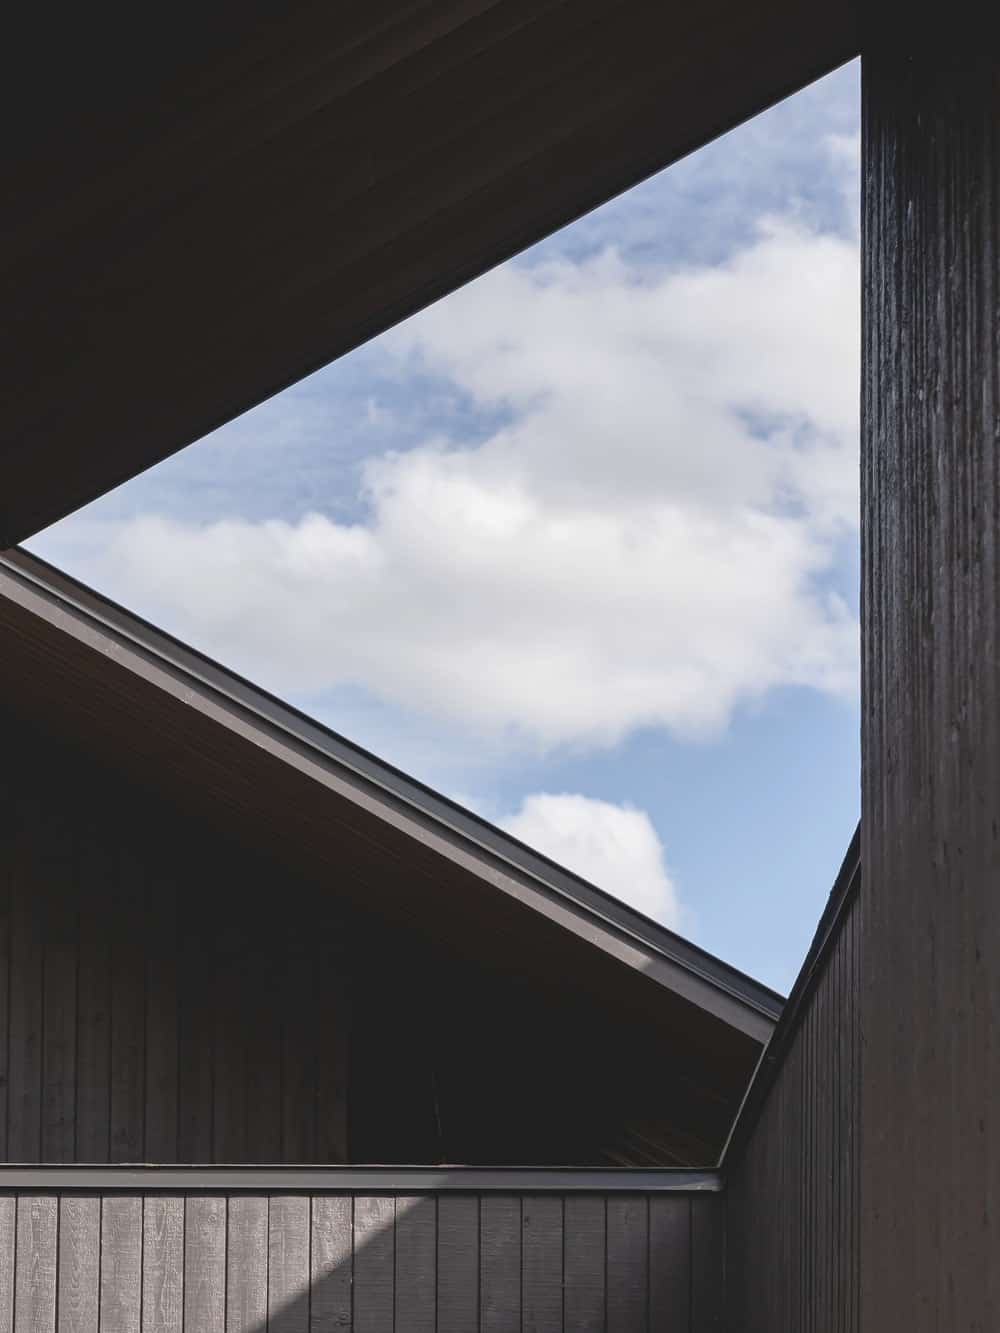 This is a close look at the skylight of the house that brings in natural lighting.